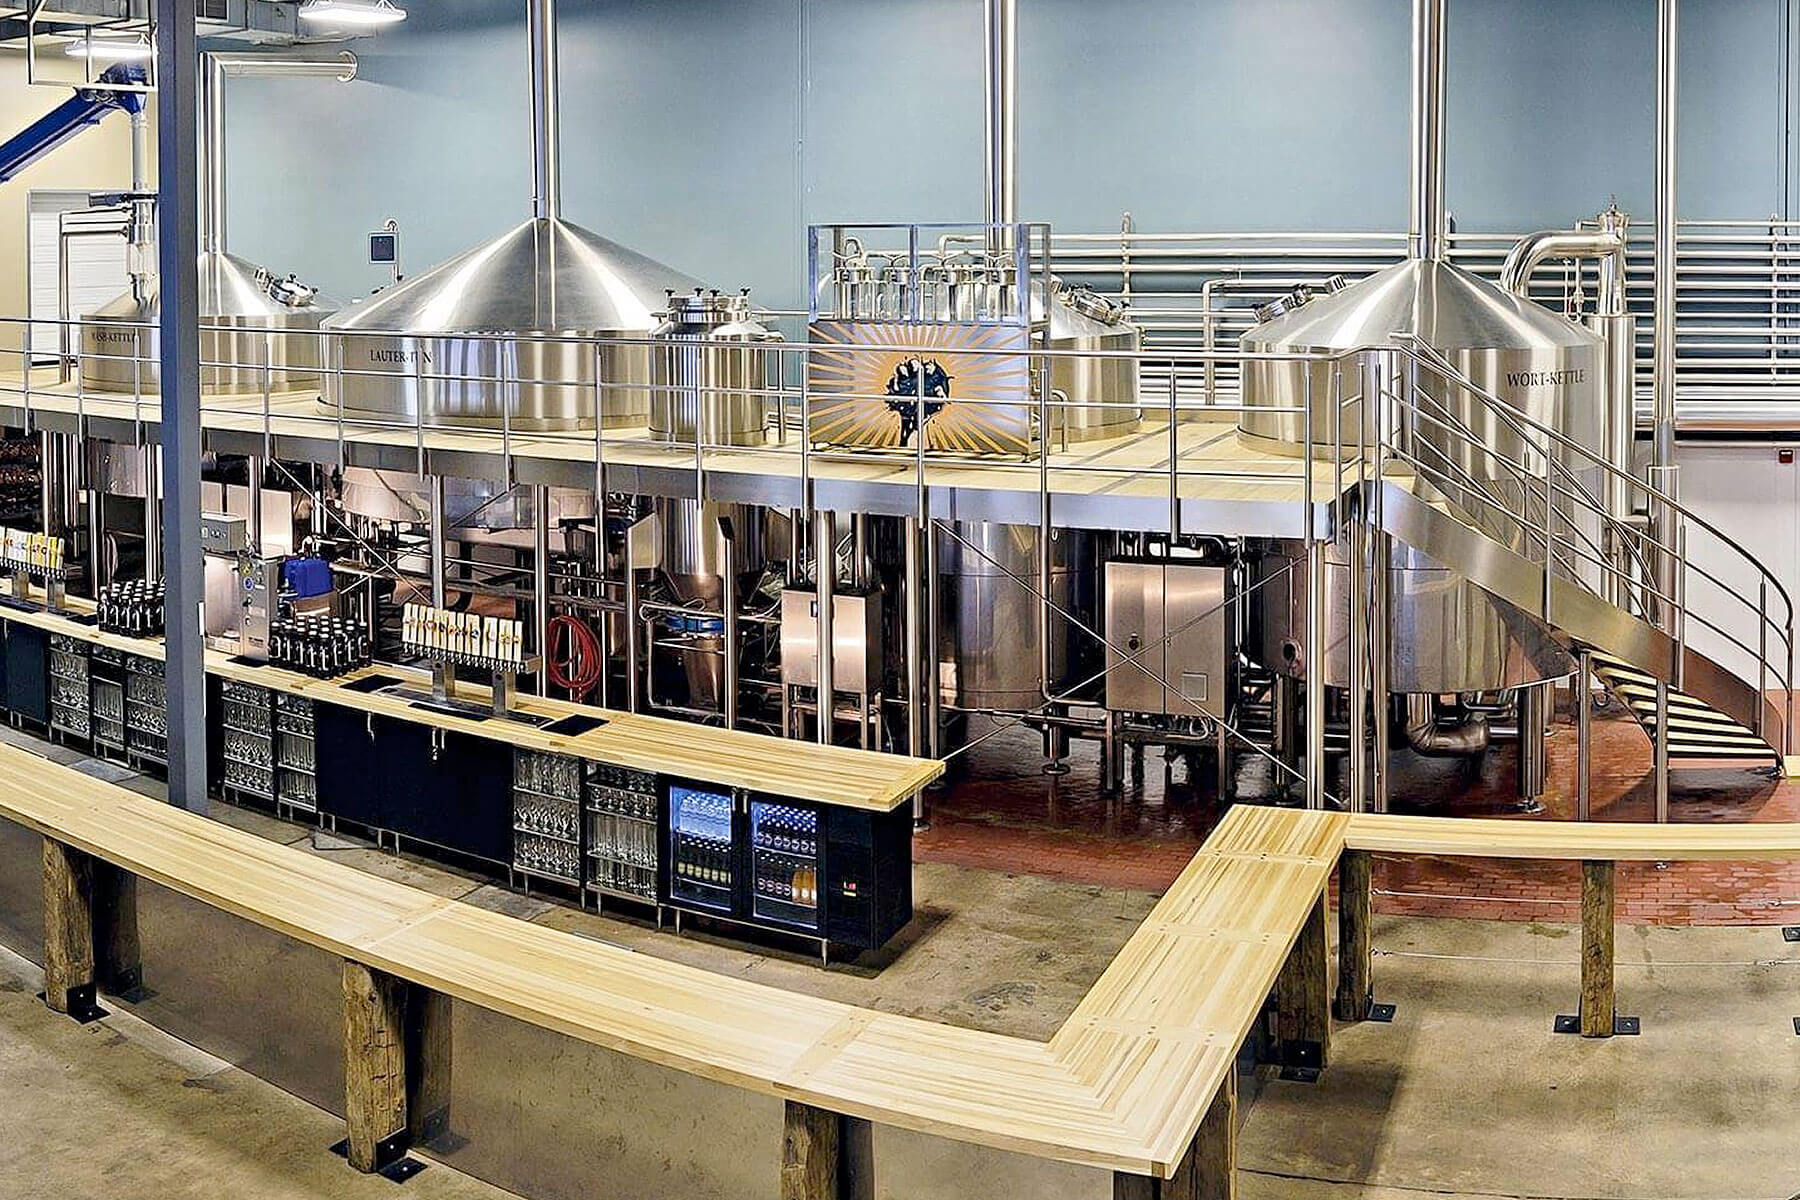 Inside the taproom and brewhouse at Tröegs Independent Brewing in Hershey, Pennsylvania